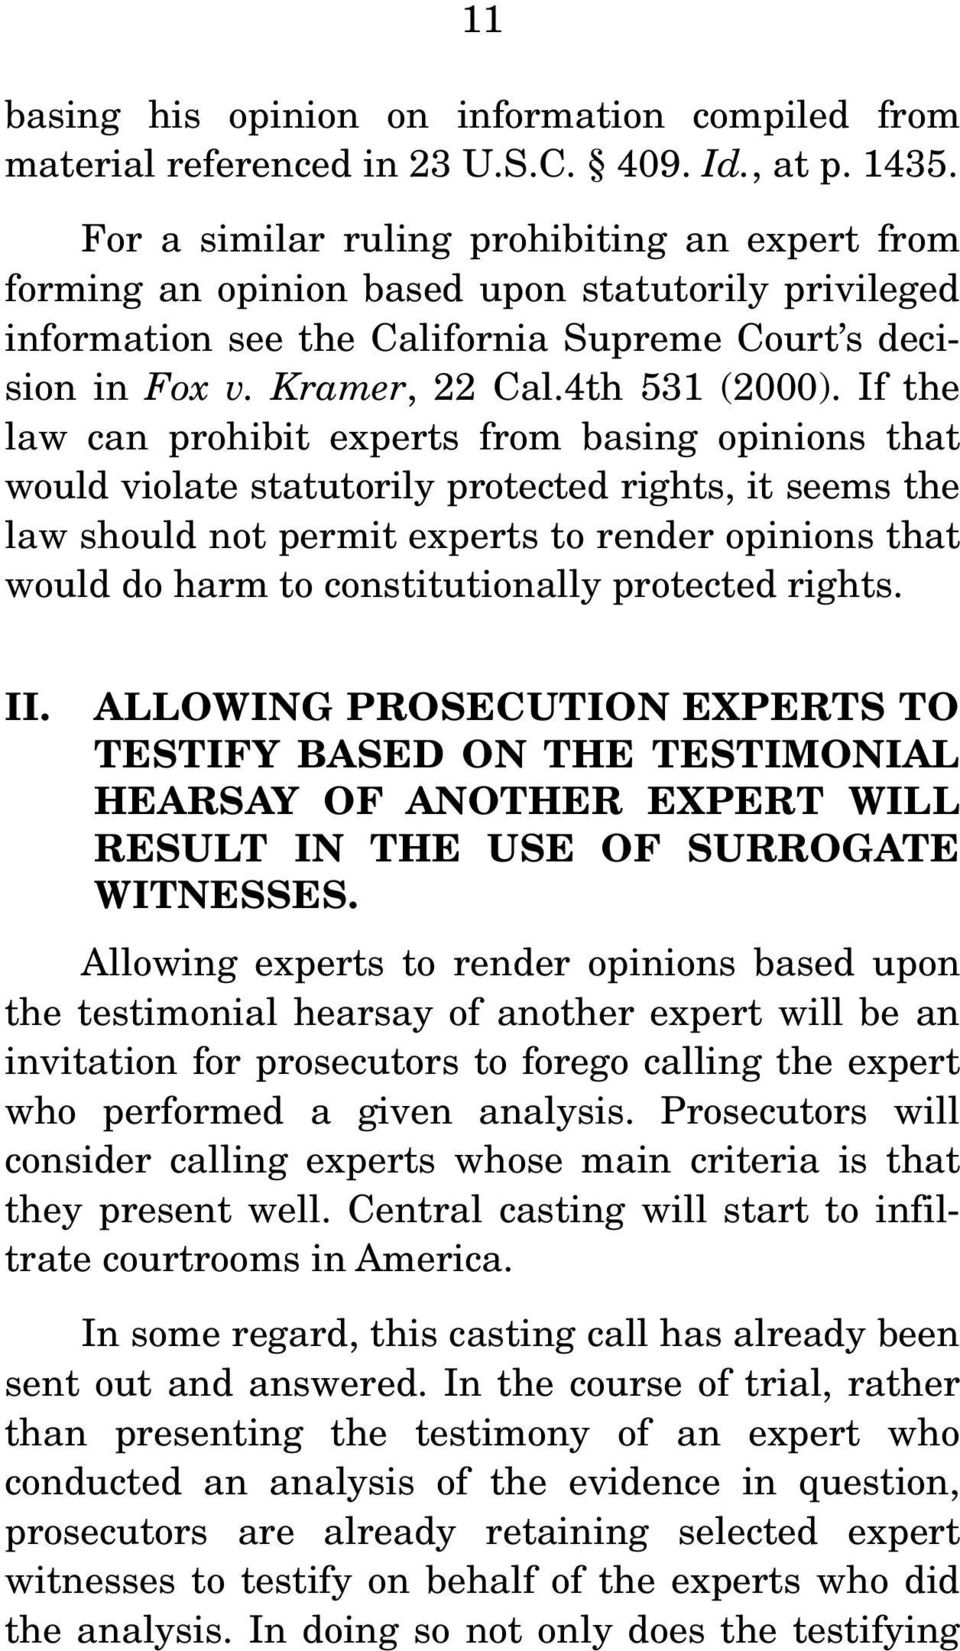 If the law can prohibit experts from basing opinions that would violate statutorily protected rights, it seems the law should not permit experts to render opinions that would do harm to